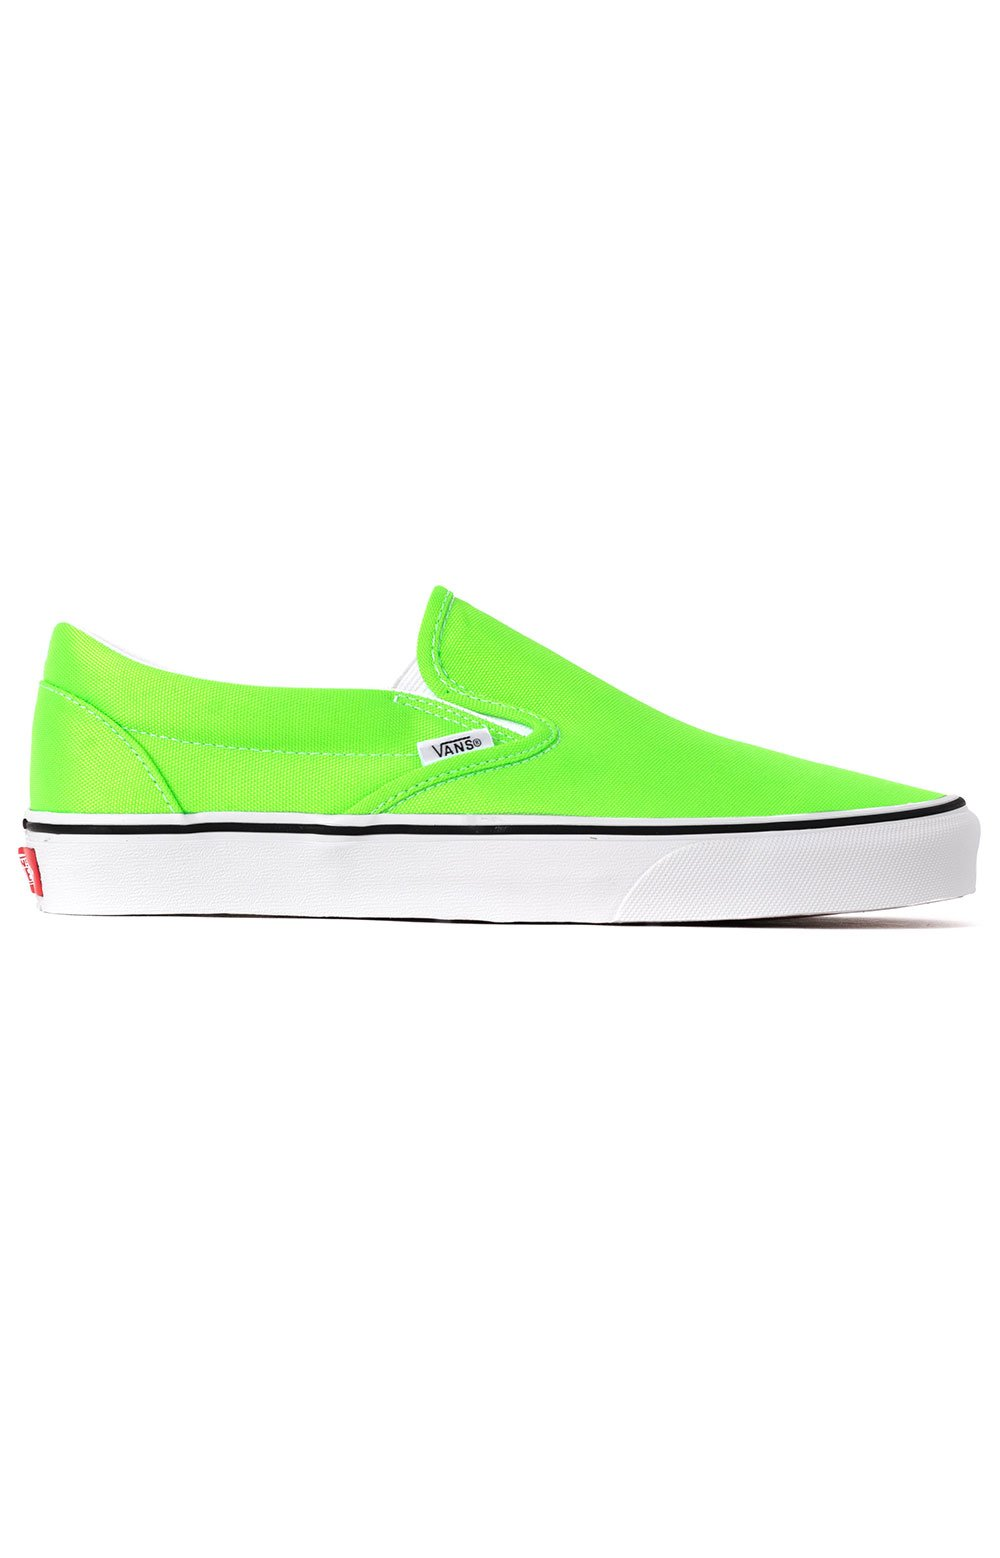 (U38WT5) Neon Classic Slip-On Shoes - Green Gecko